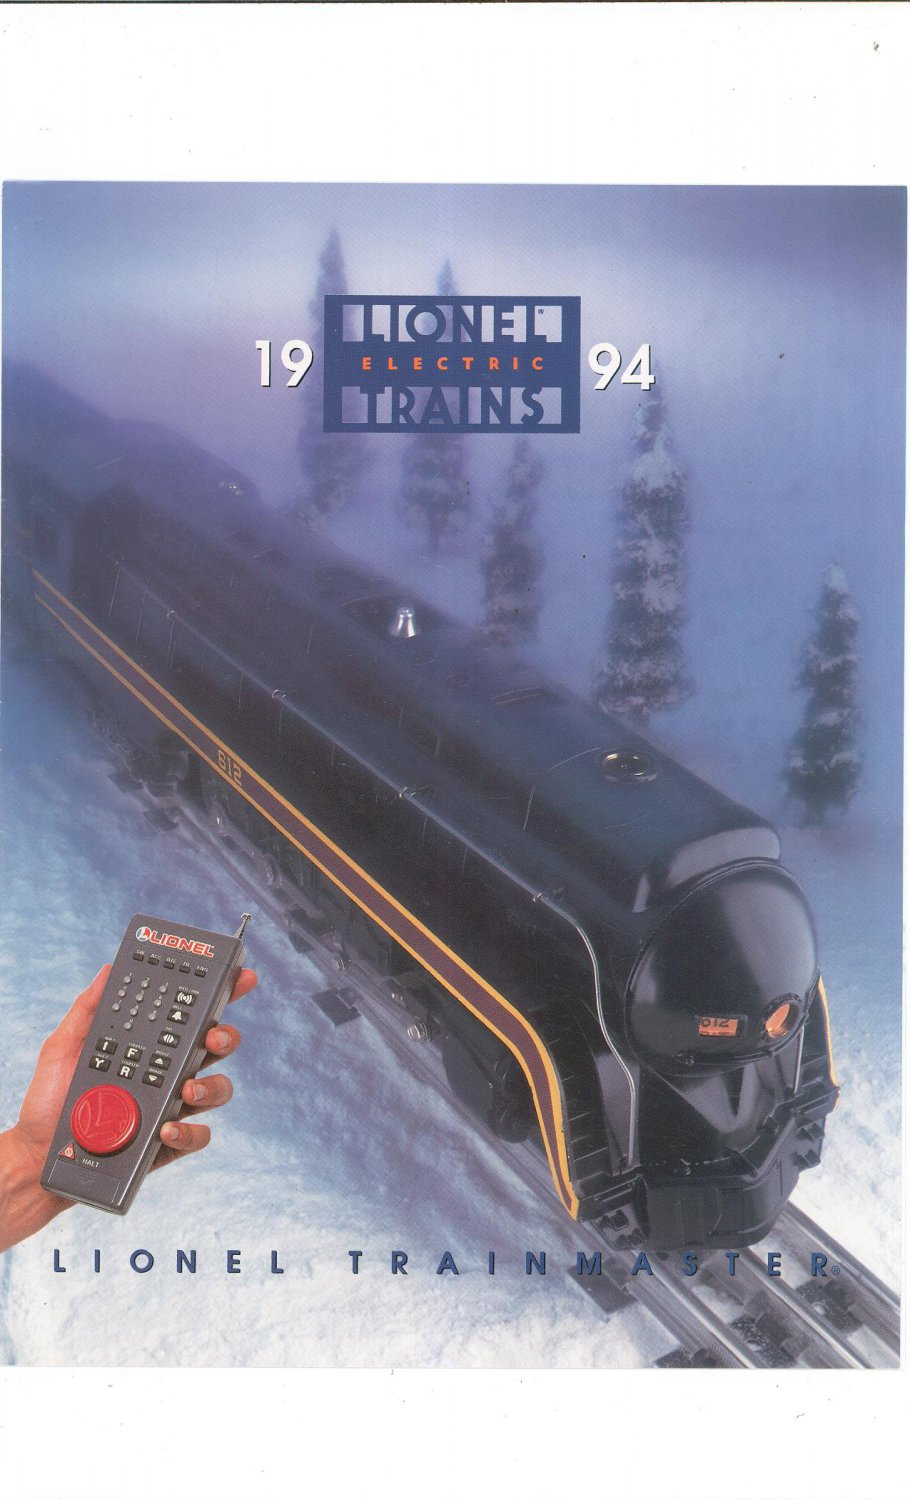 Lionel Train Master 1994 Brochure Not PDF Free Shipping Offer